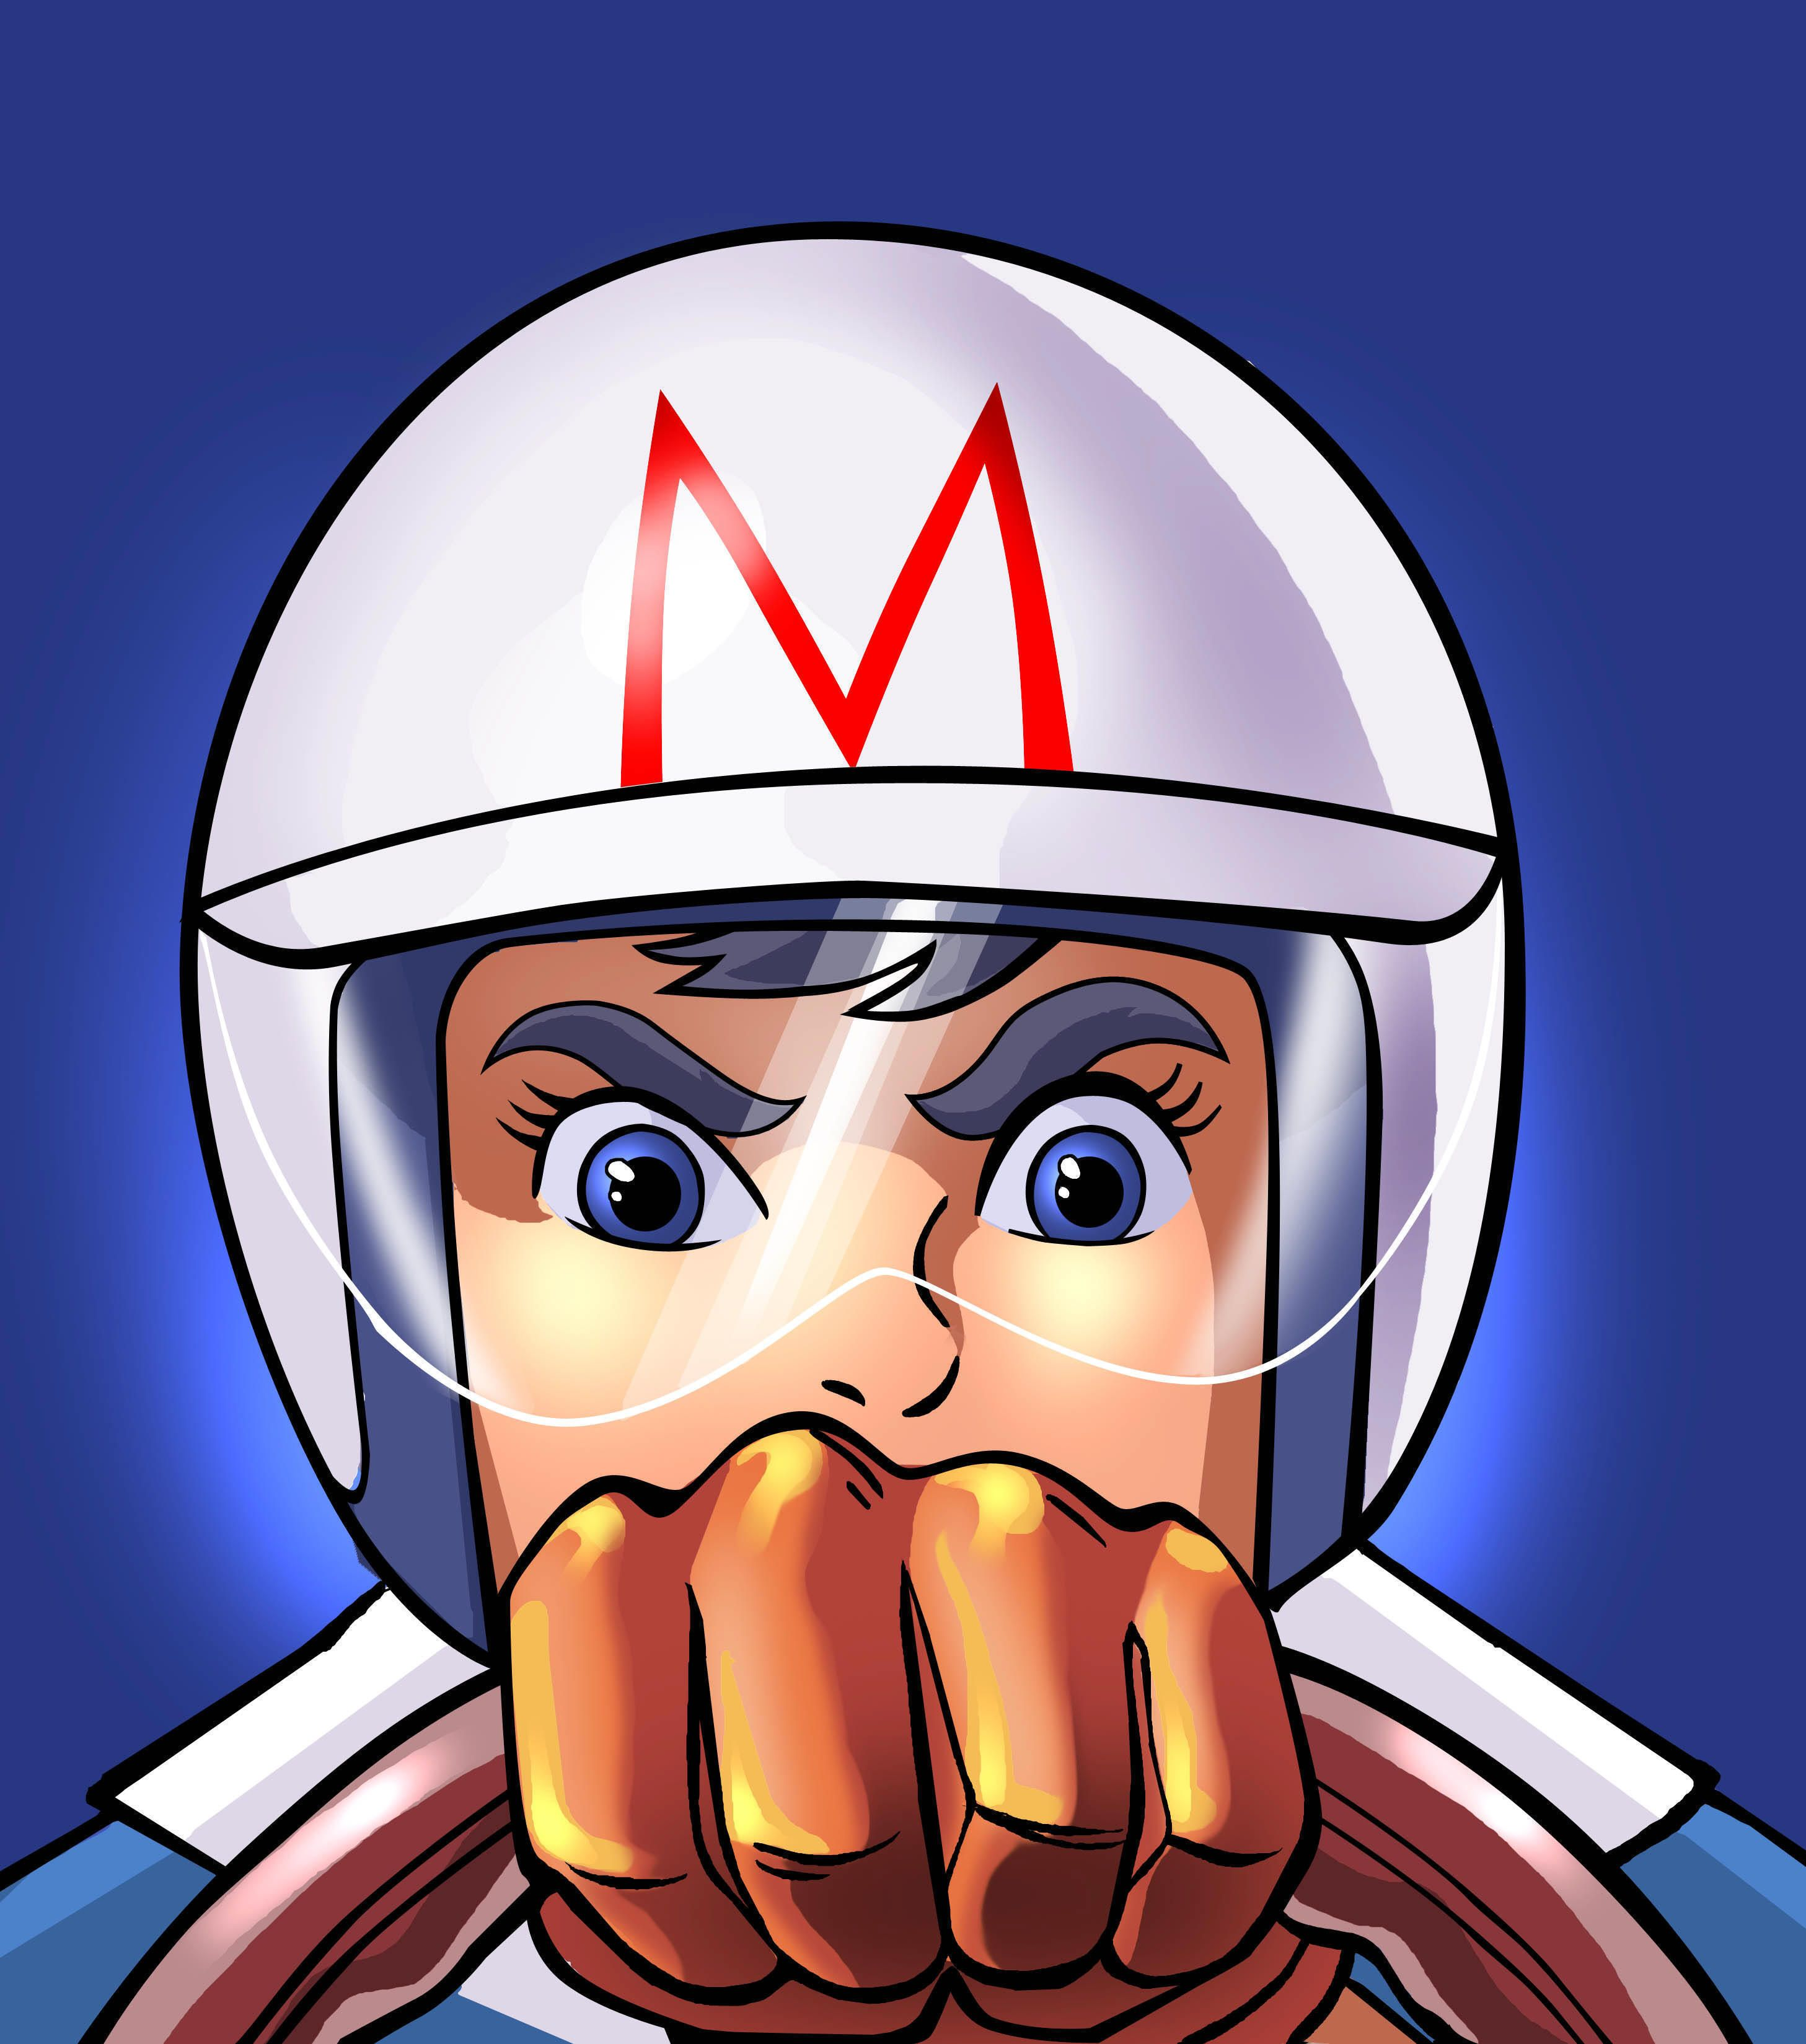 I was in love with Speed Racer when I was a child. I think